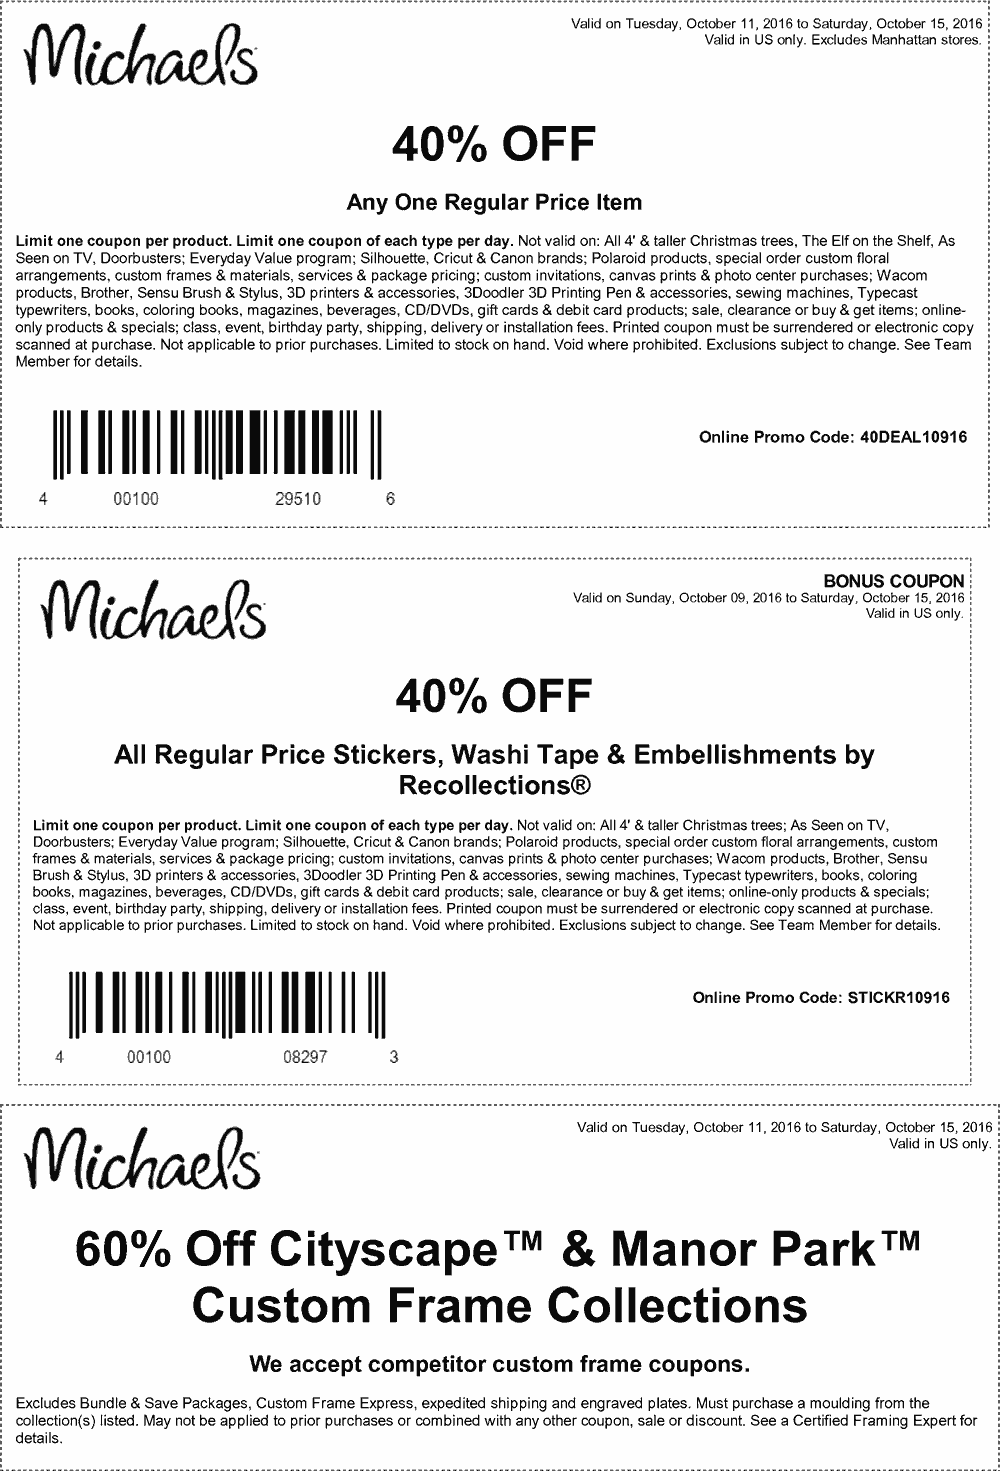 Michaels Coupon August 2017 40% off a single item & more at Michaels, or online via promo code 40DEAL10916